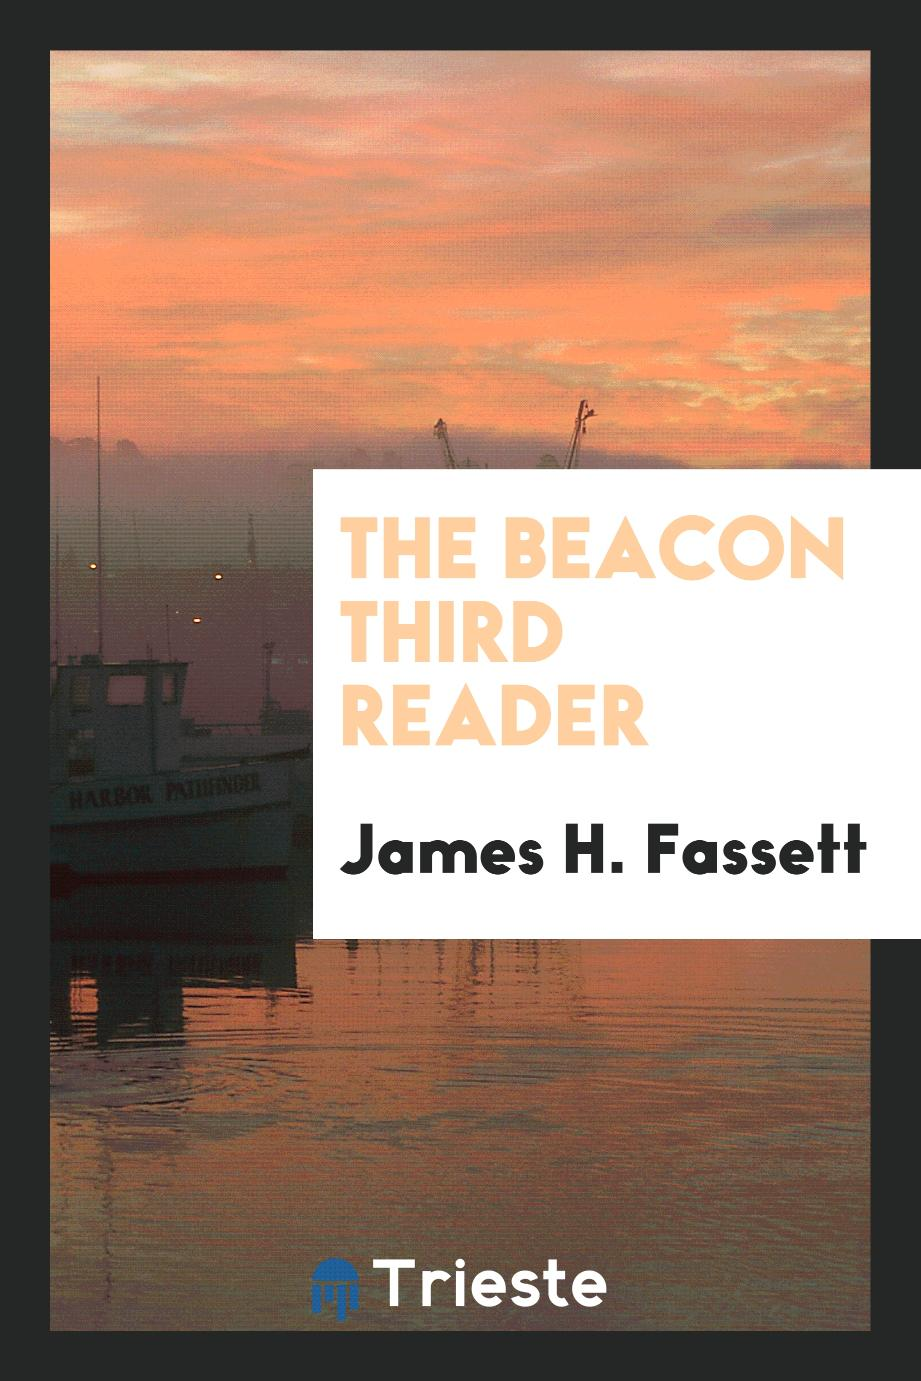 The Beacon Third Reader